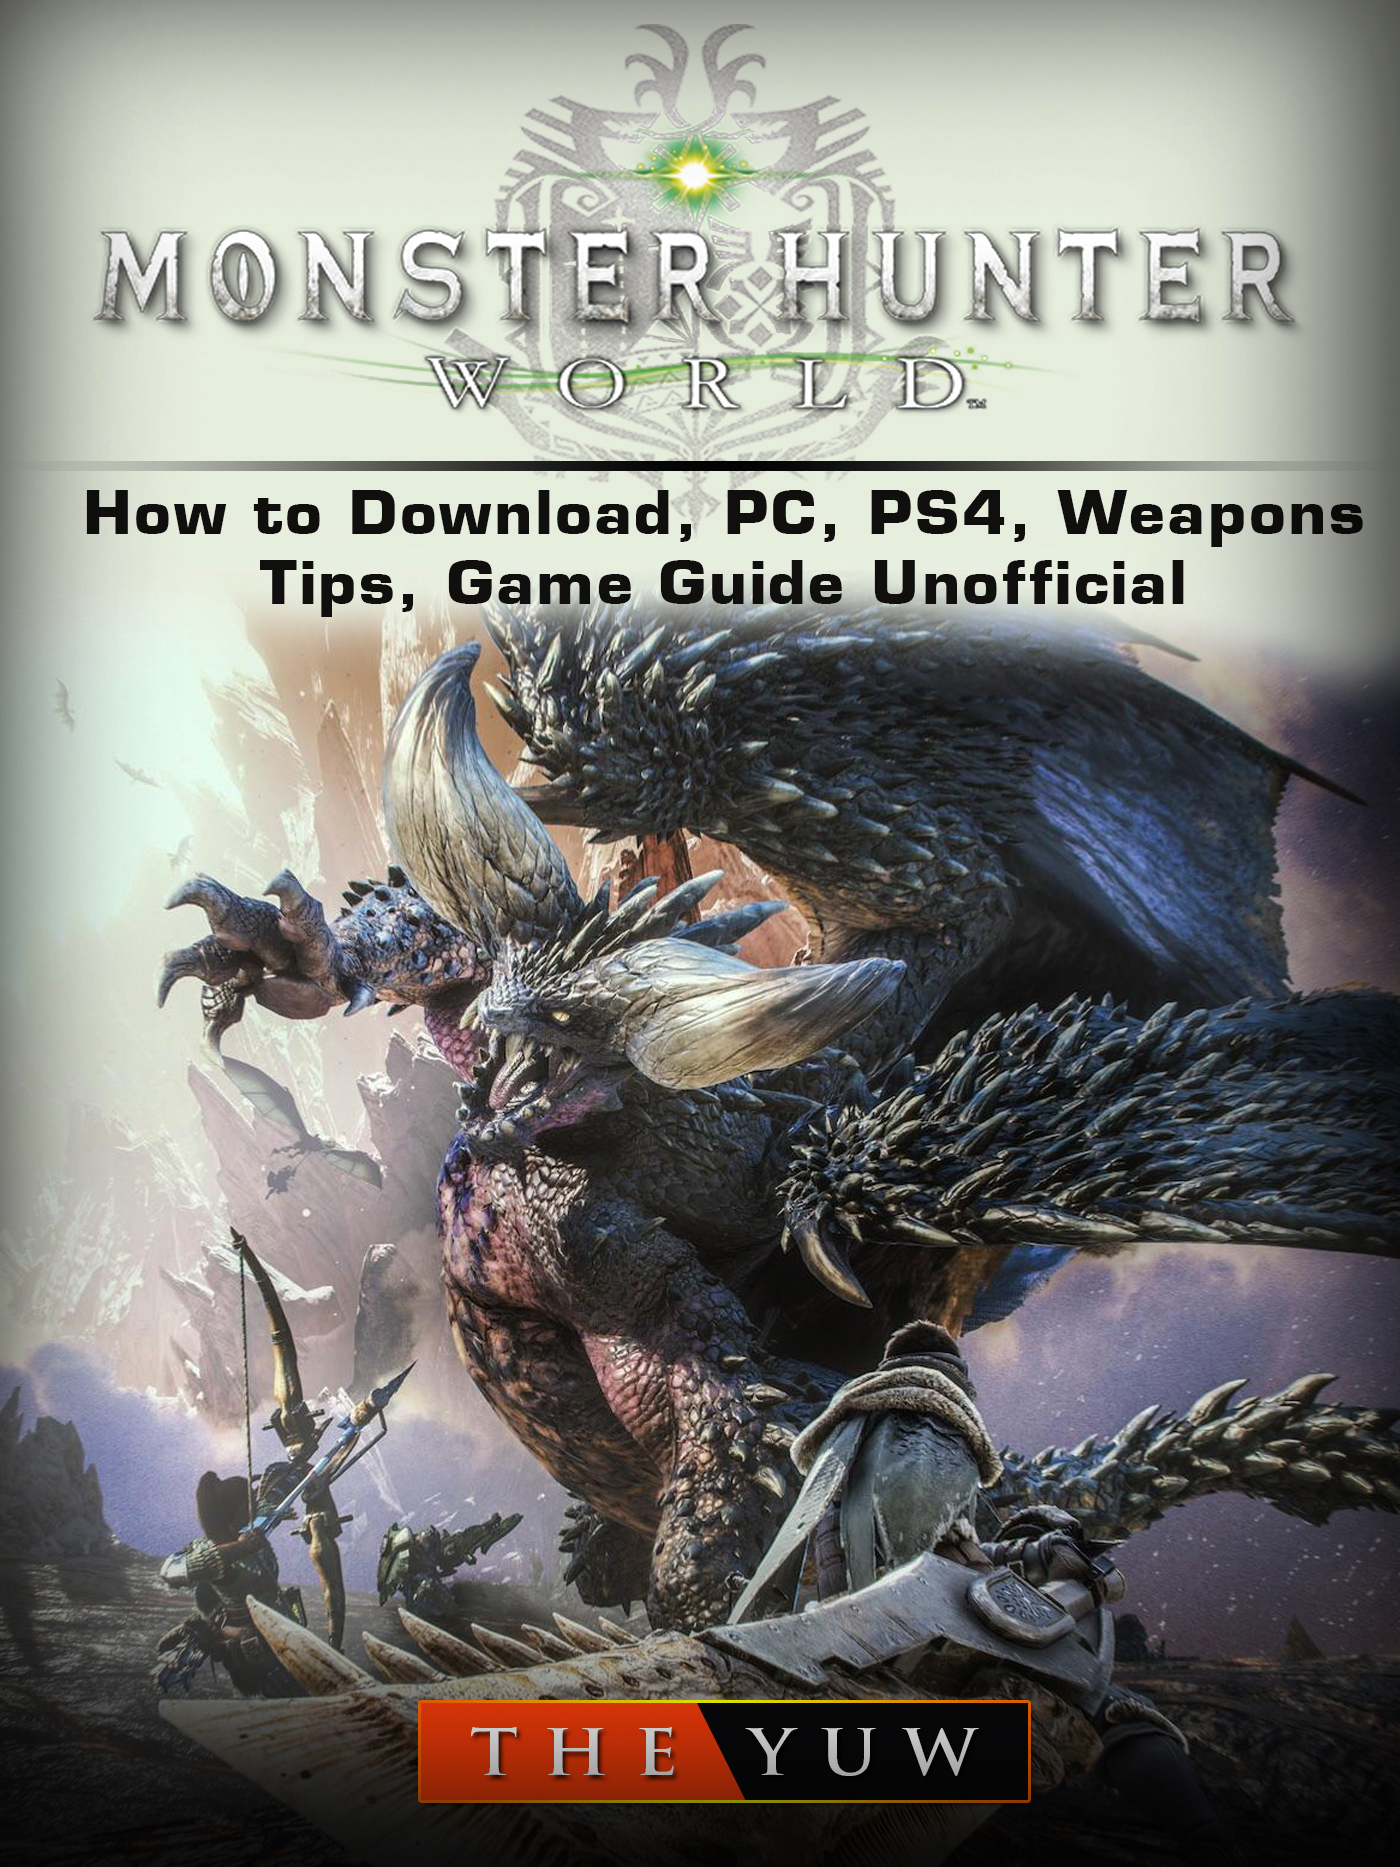 Monster Hunter World How to Download, PC, PS4, Weapons, Tips, Game Guide Unofficial By The Yuw